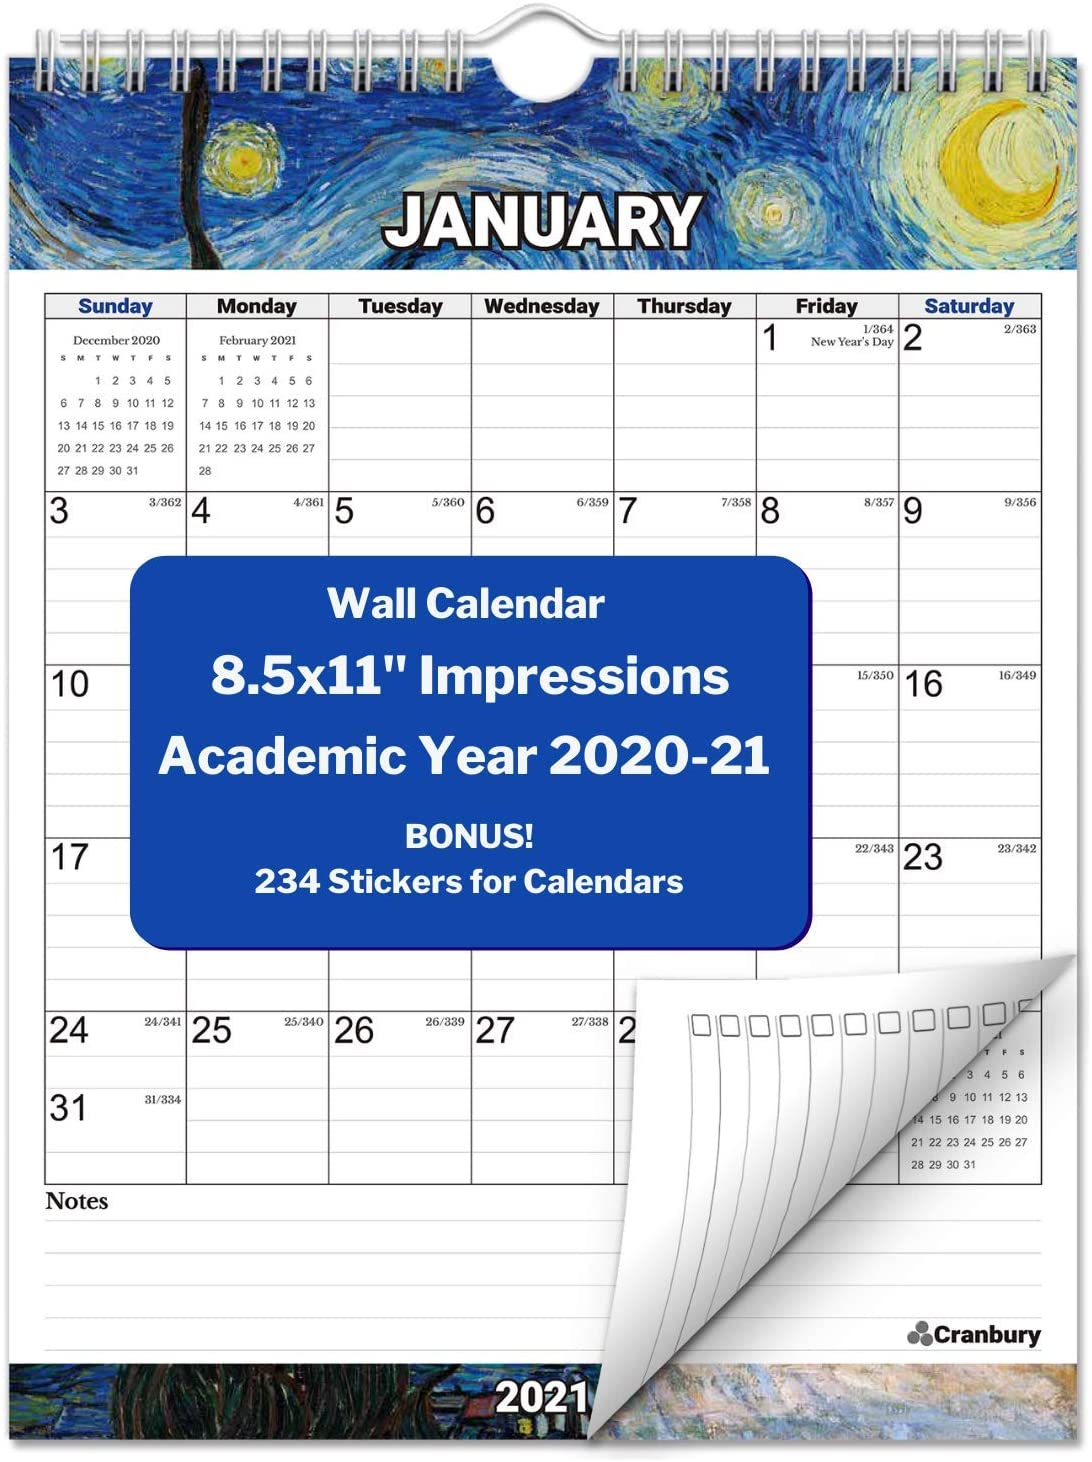 CRANBURY Small Vertical Wall Calendar 2020-2021 (Impressions), Hanging Monthly Wall Calendar, 8.5x11 Inches, Use Now to December 2021, School Year Academic Calendar, Bonus Stickers Included